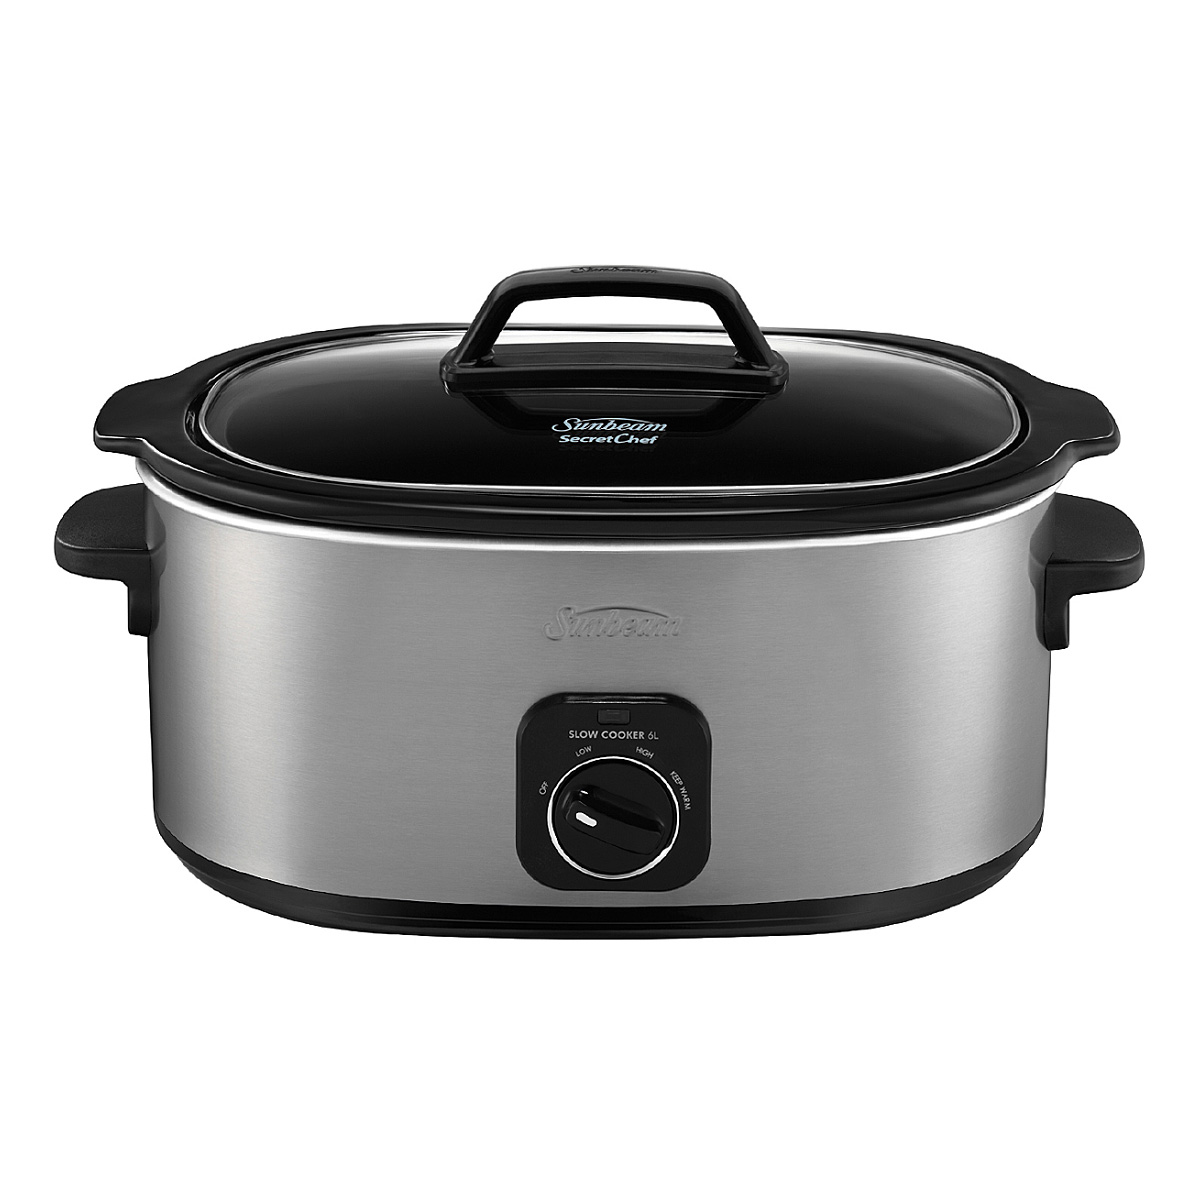 Sunbeam Slow Cooker HP6000